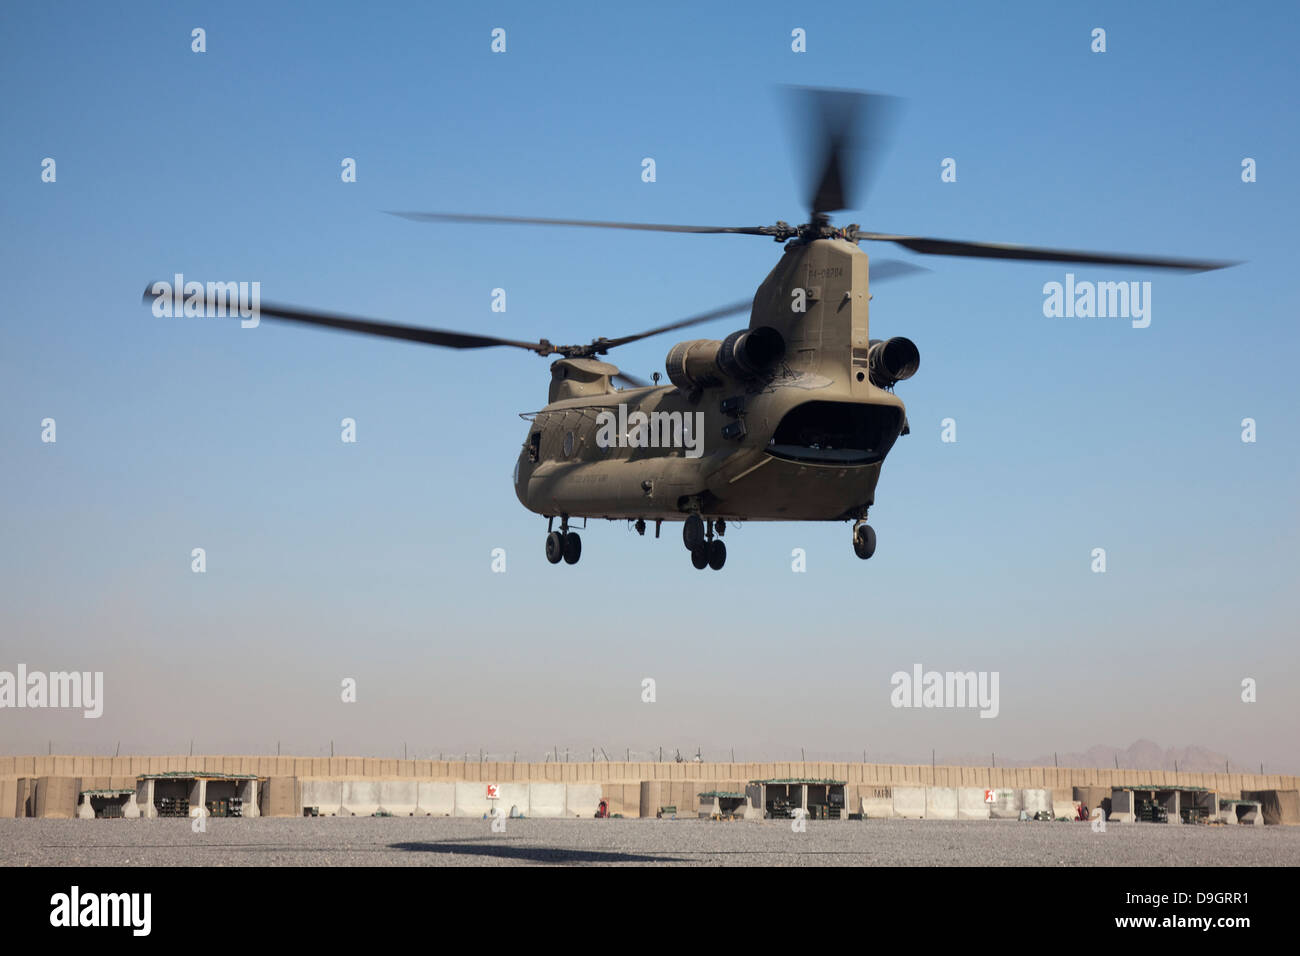 A CH-47 Chinook helicopter prepare to land. - Stock Image